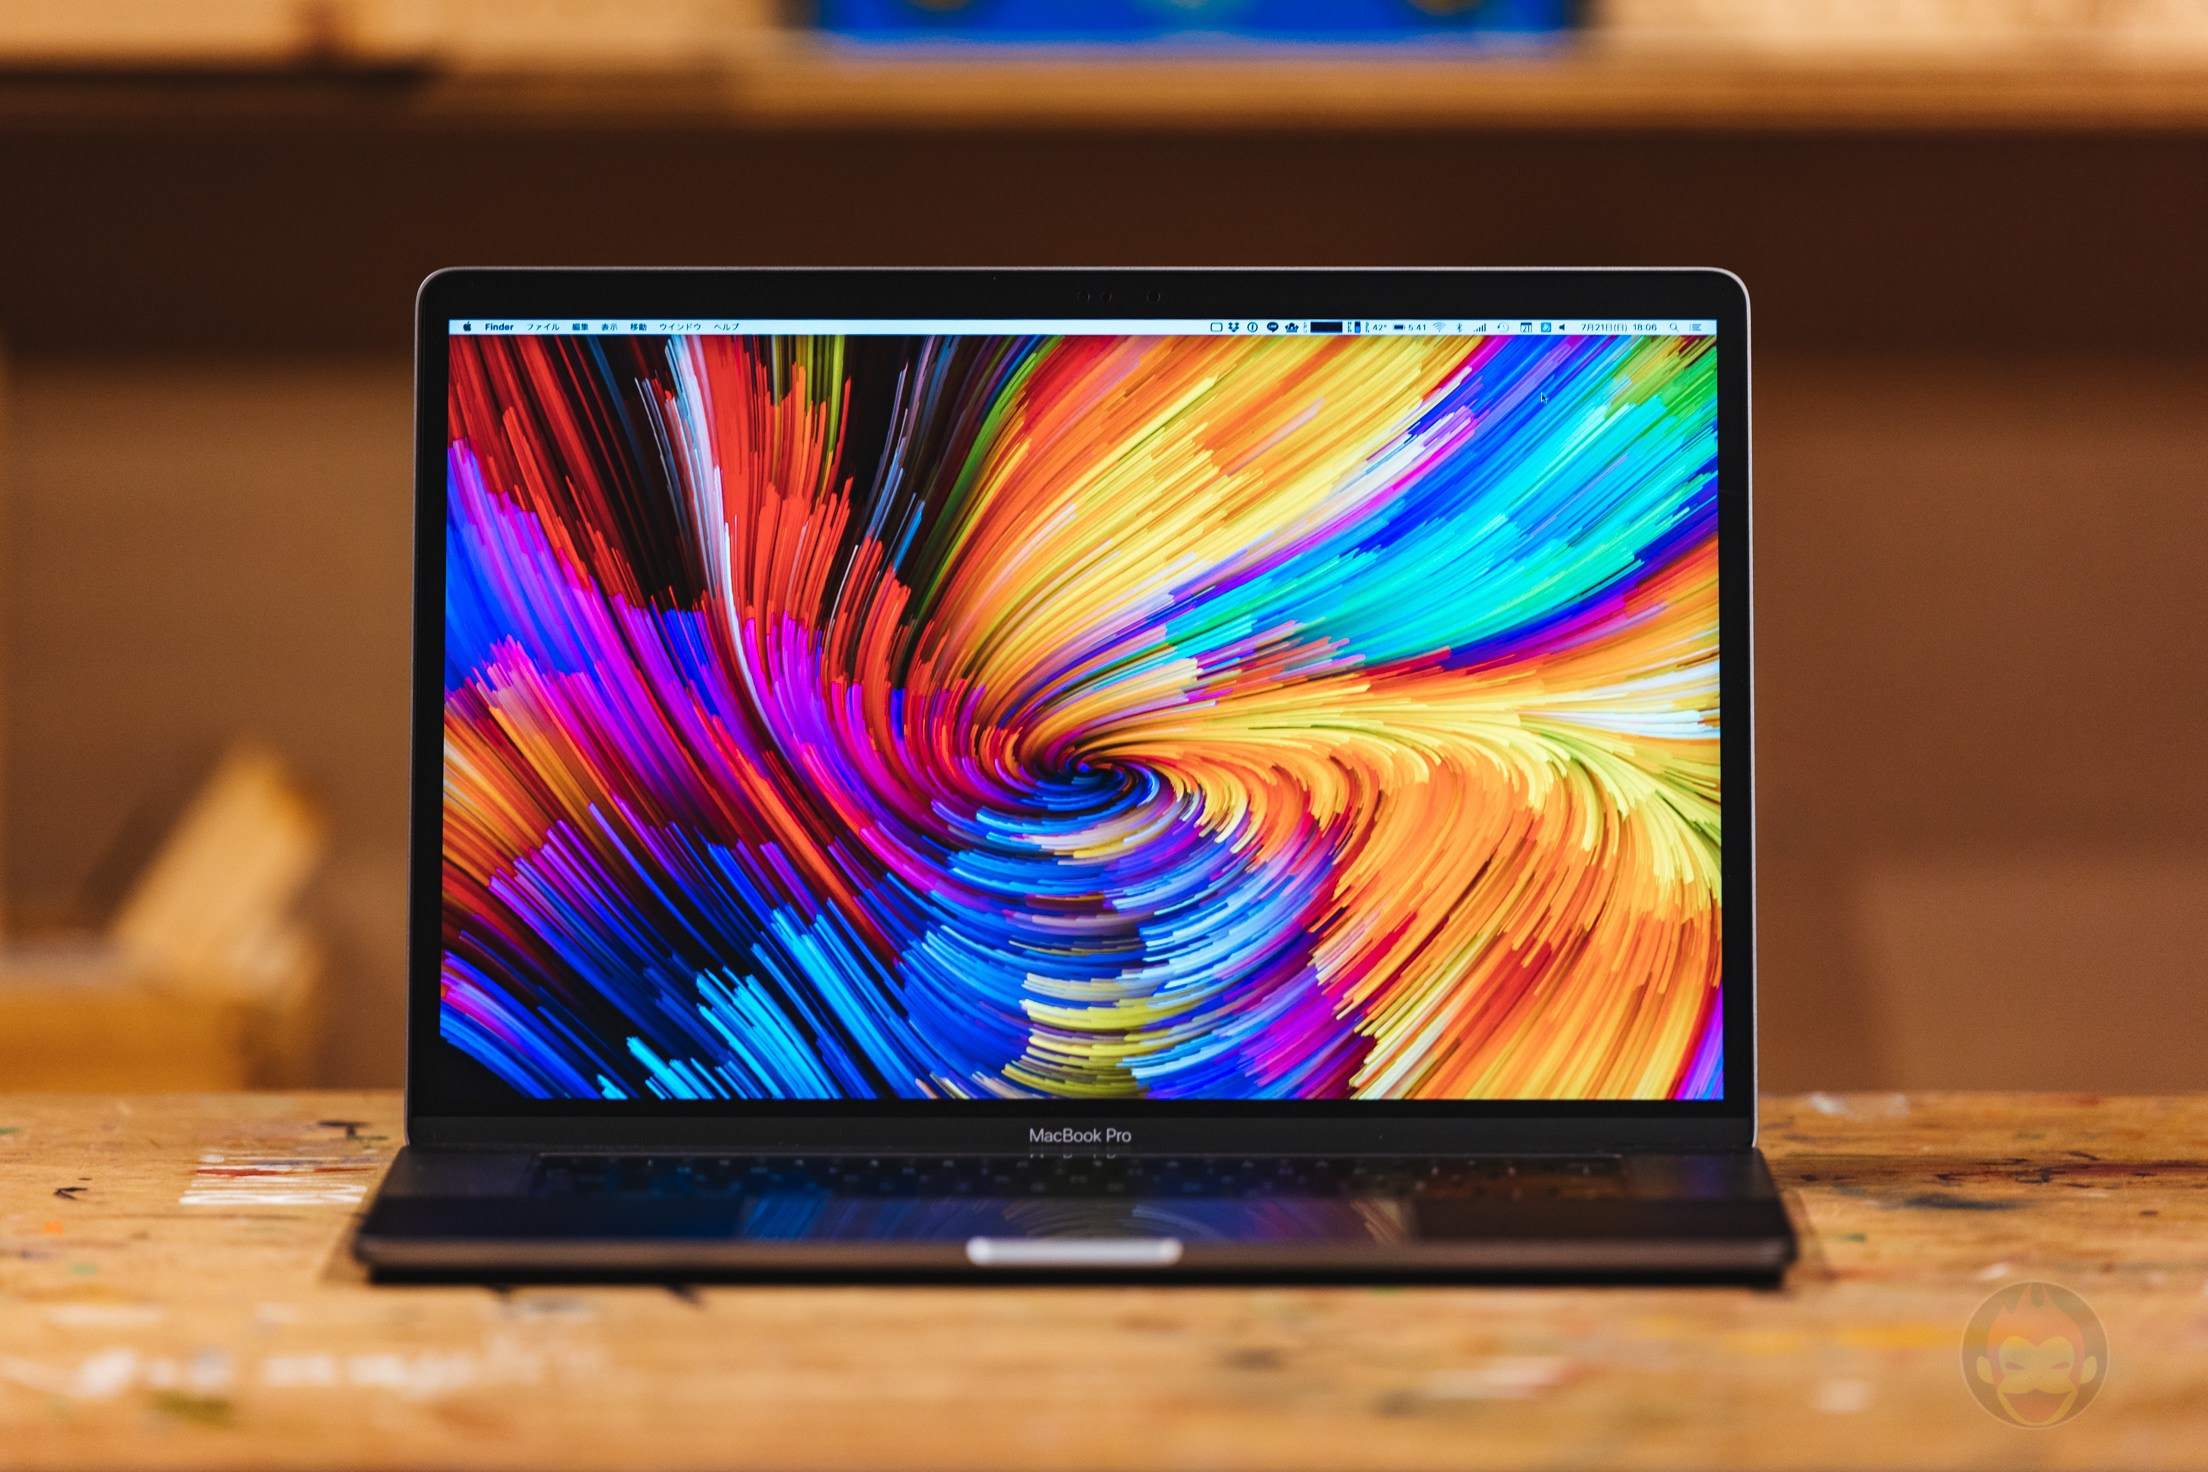 MacBook-Pro-2019-15inch-review-21.jpg